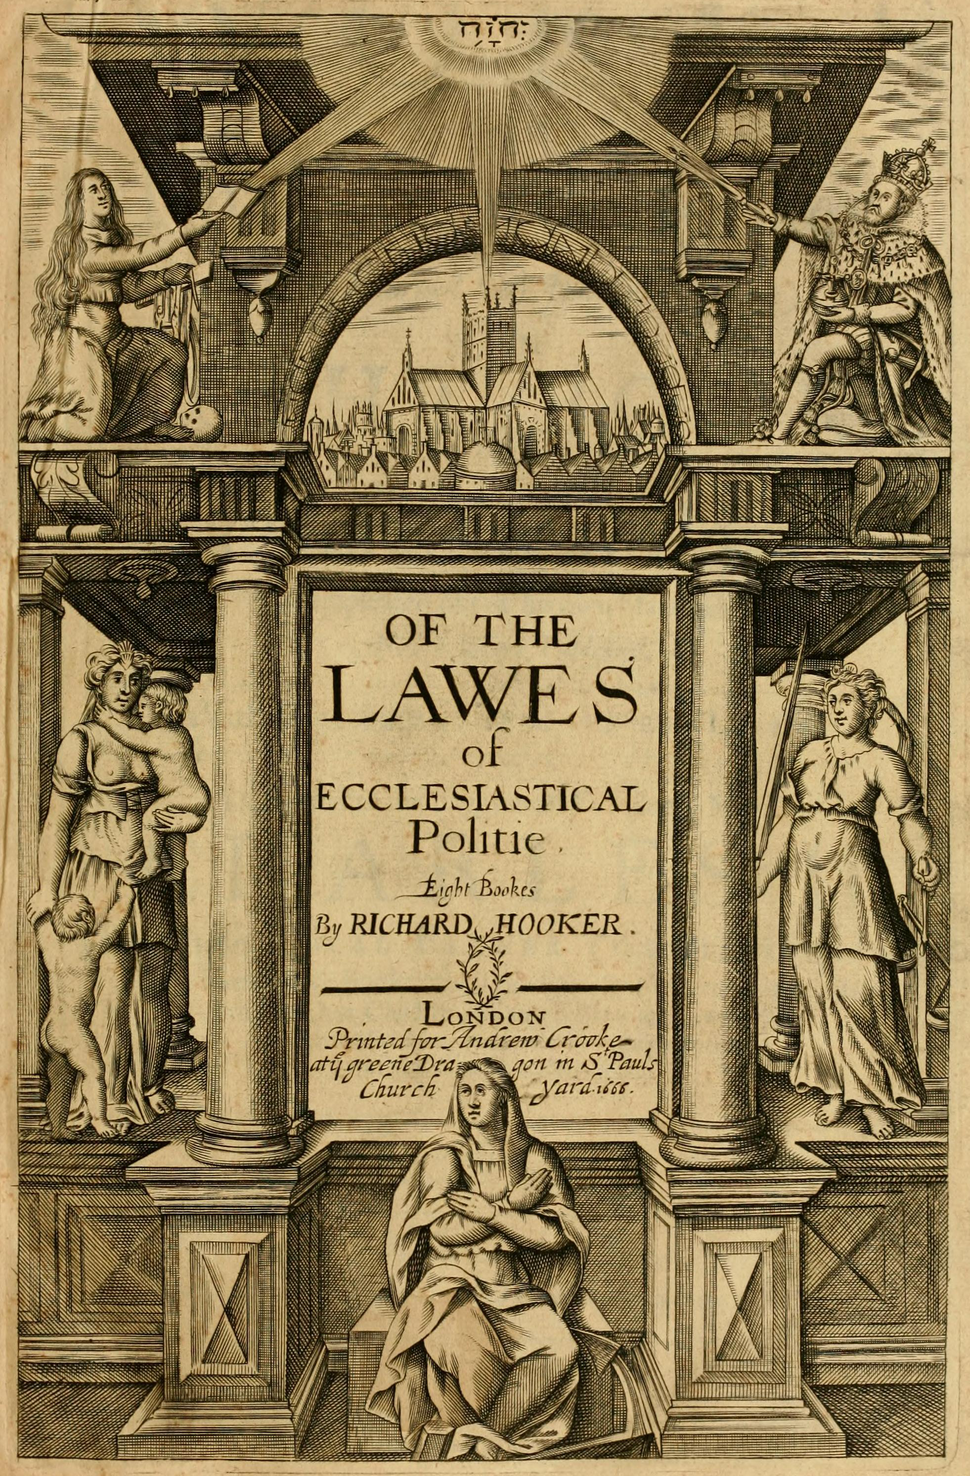 Of the lawes of ecclesiastical politie (1666)